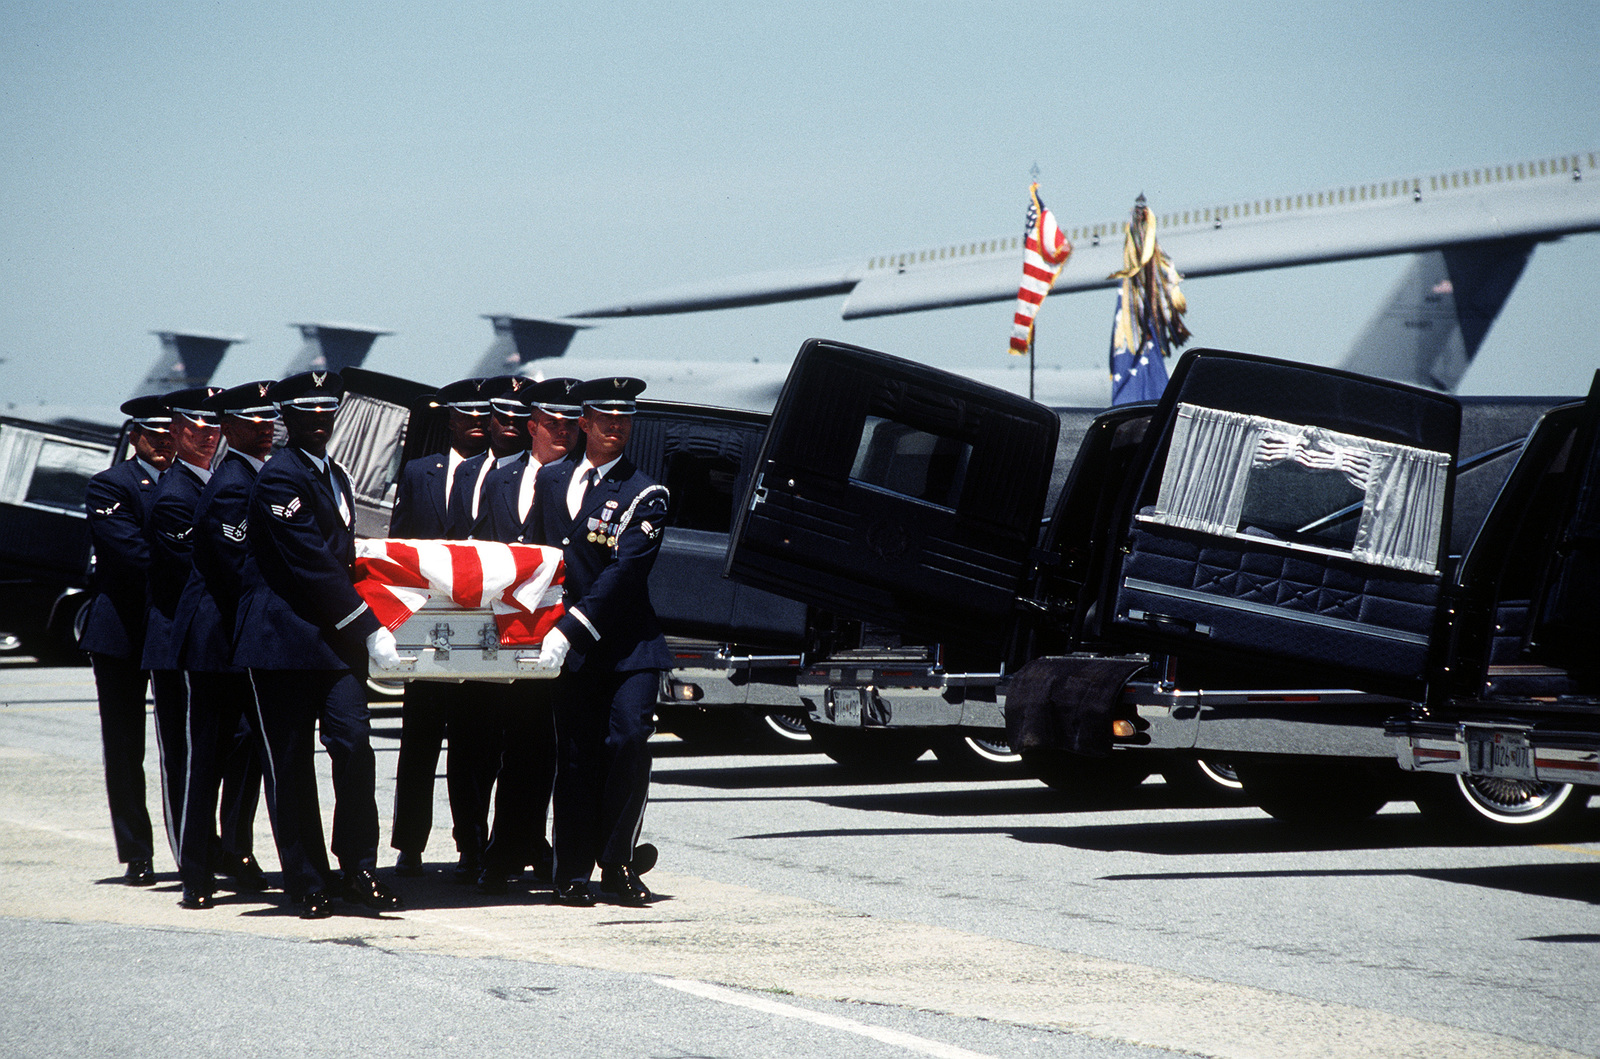 Dover Air Force Base honor guard carries the flag draped casket of one of the nineteen service members killed in the Dhahran, Saudi Arabia bombing. A memorial service for the nineteen military members is being held on the flightline at Dover Air Force Base, Delaware on June 27, 1996